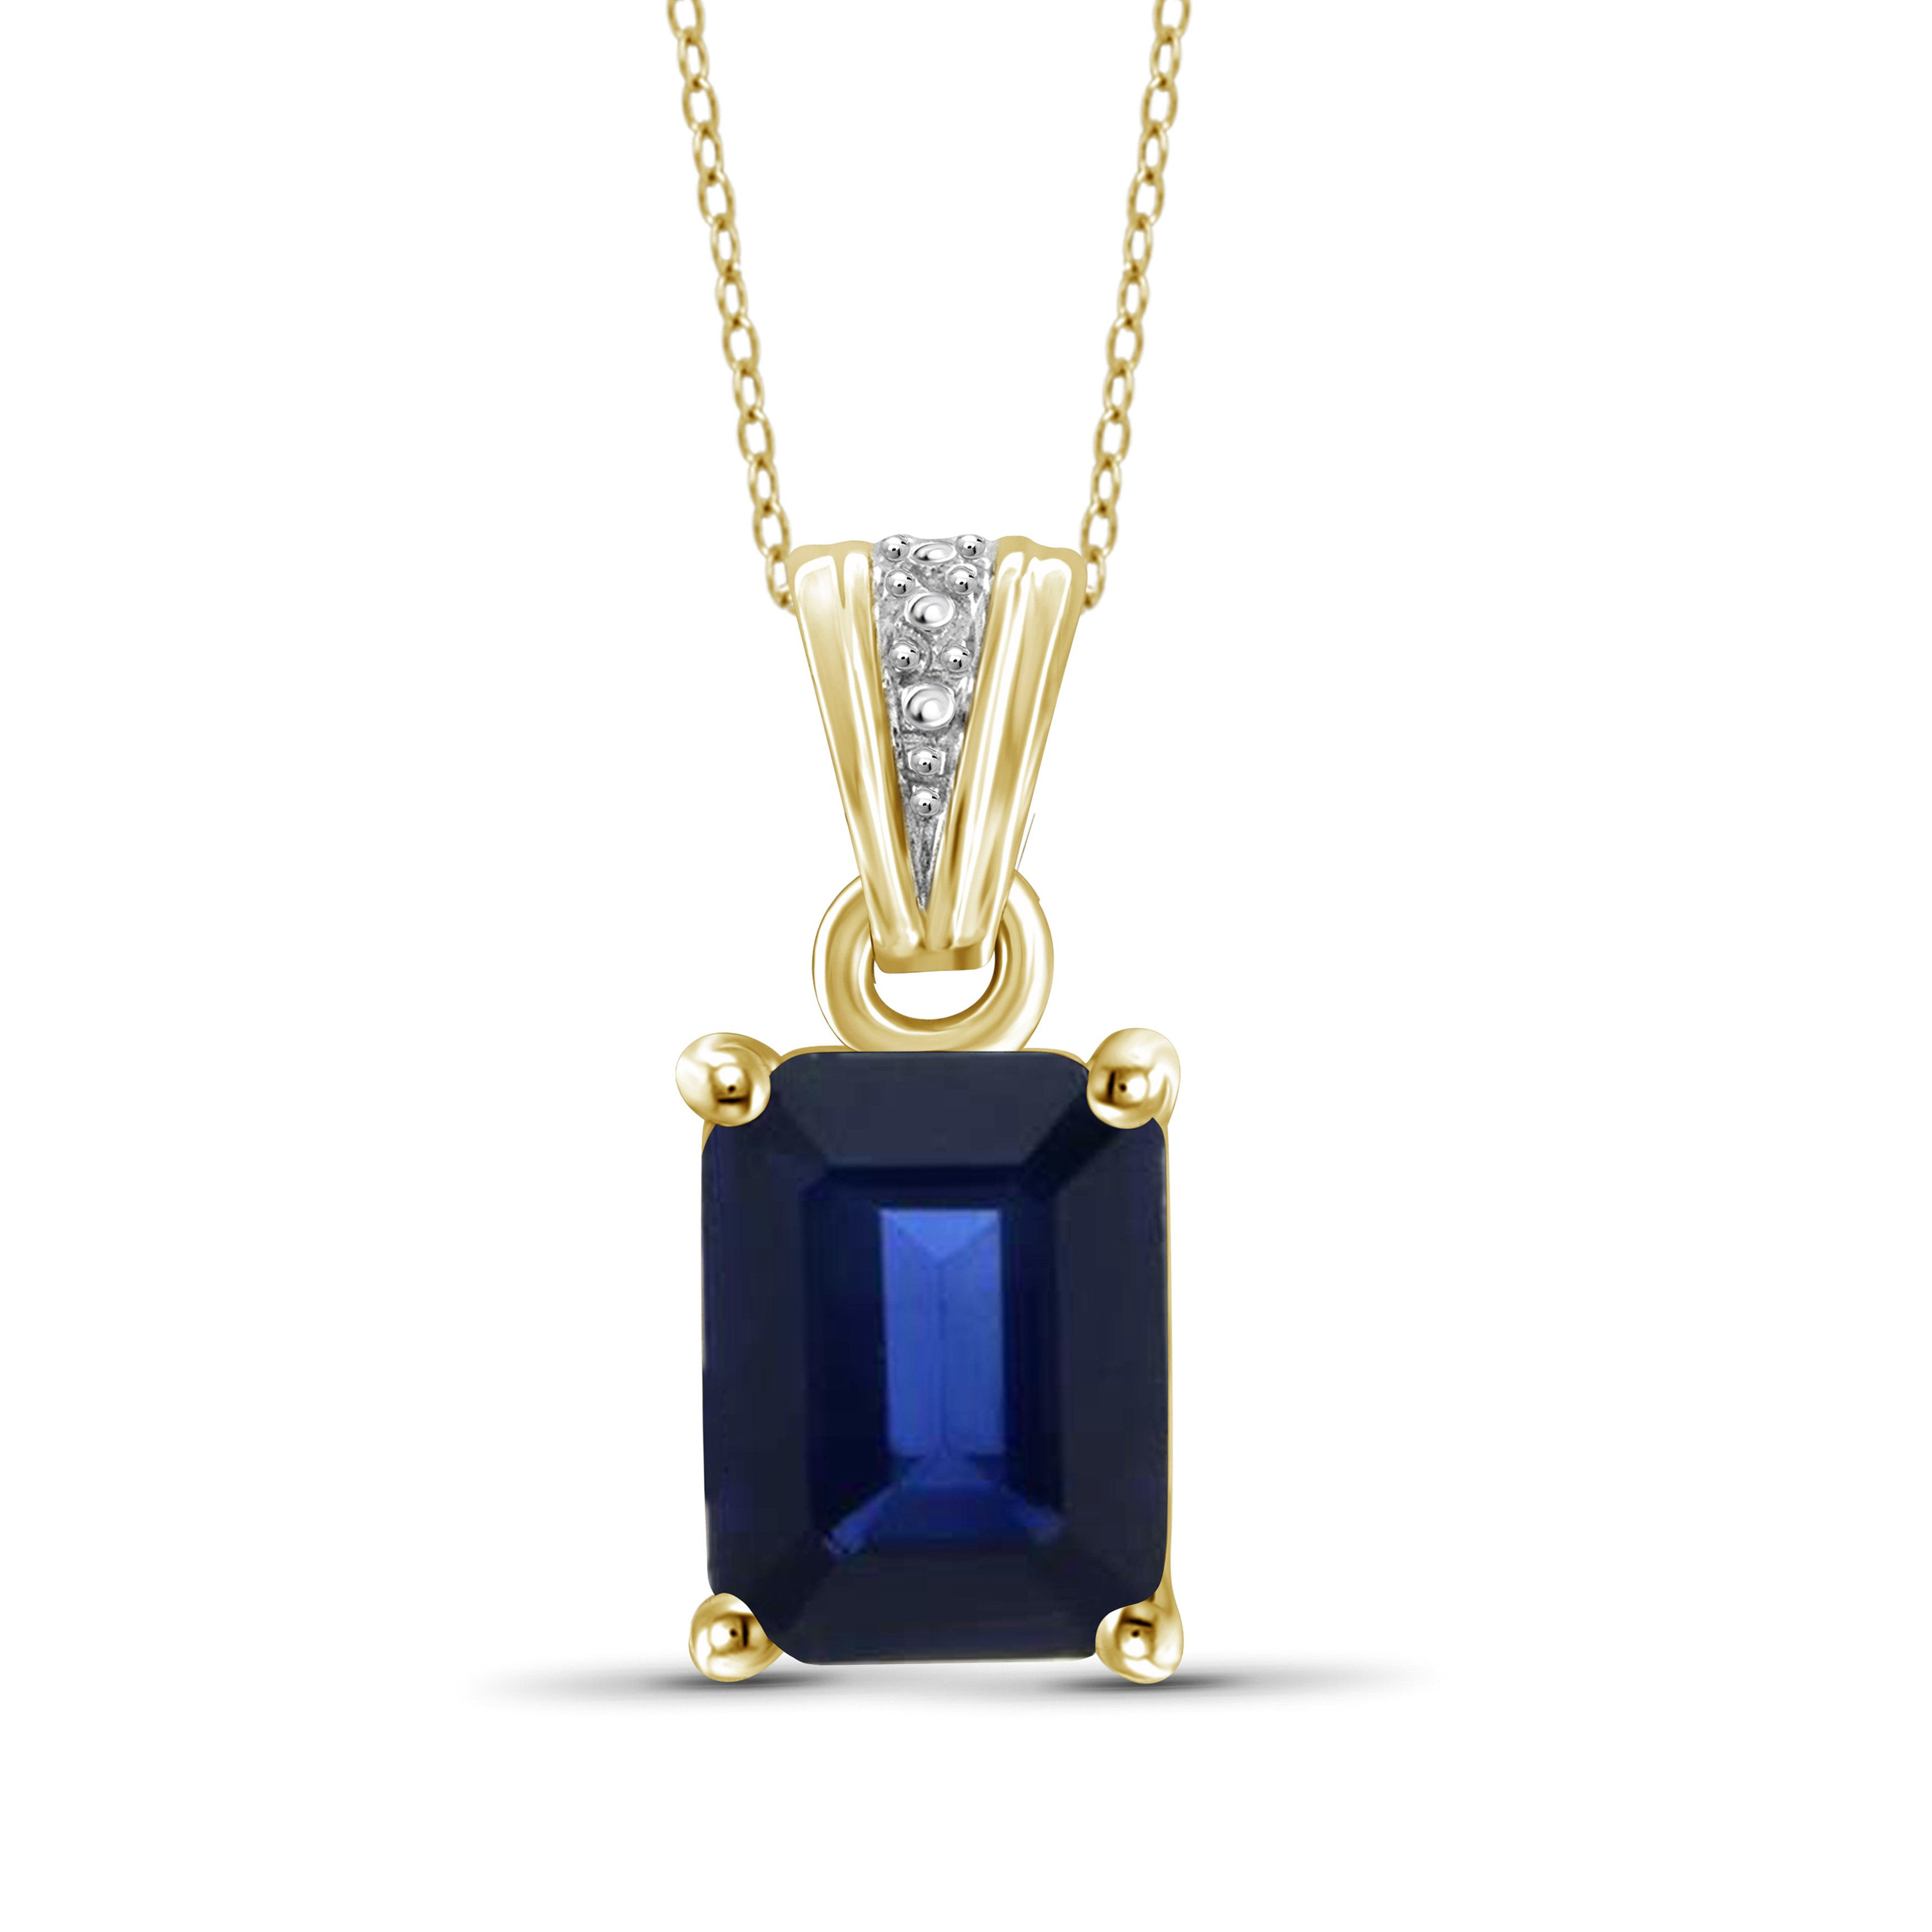 Jewelonfire Sterling Silver 1 7/8ct TW Genuine Sapphire Gemstone Pendant, Women's